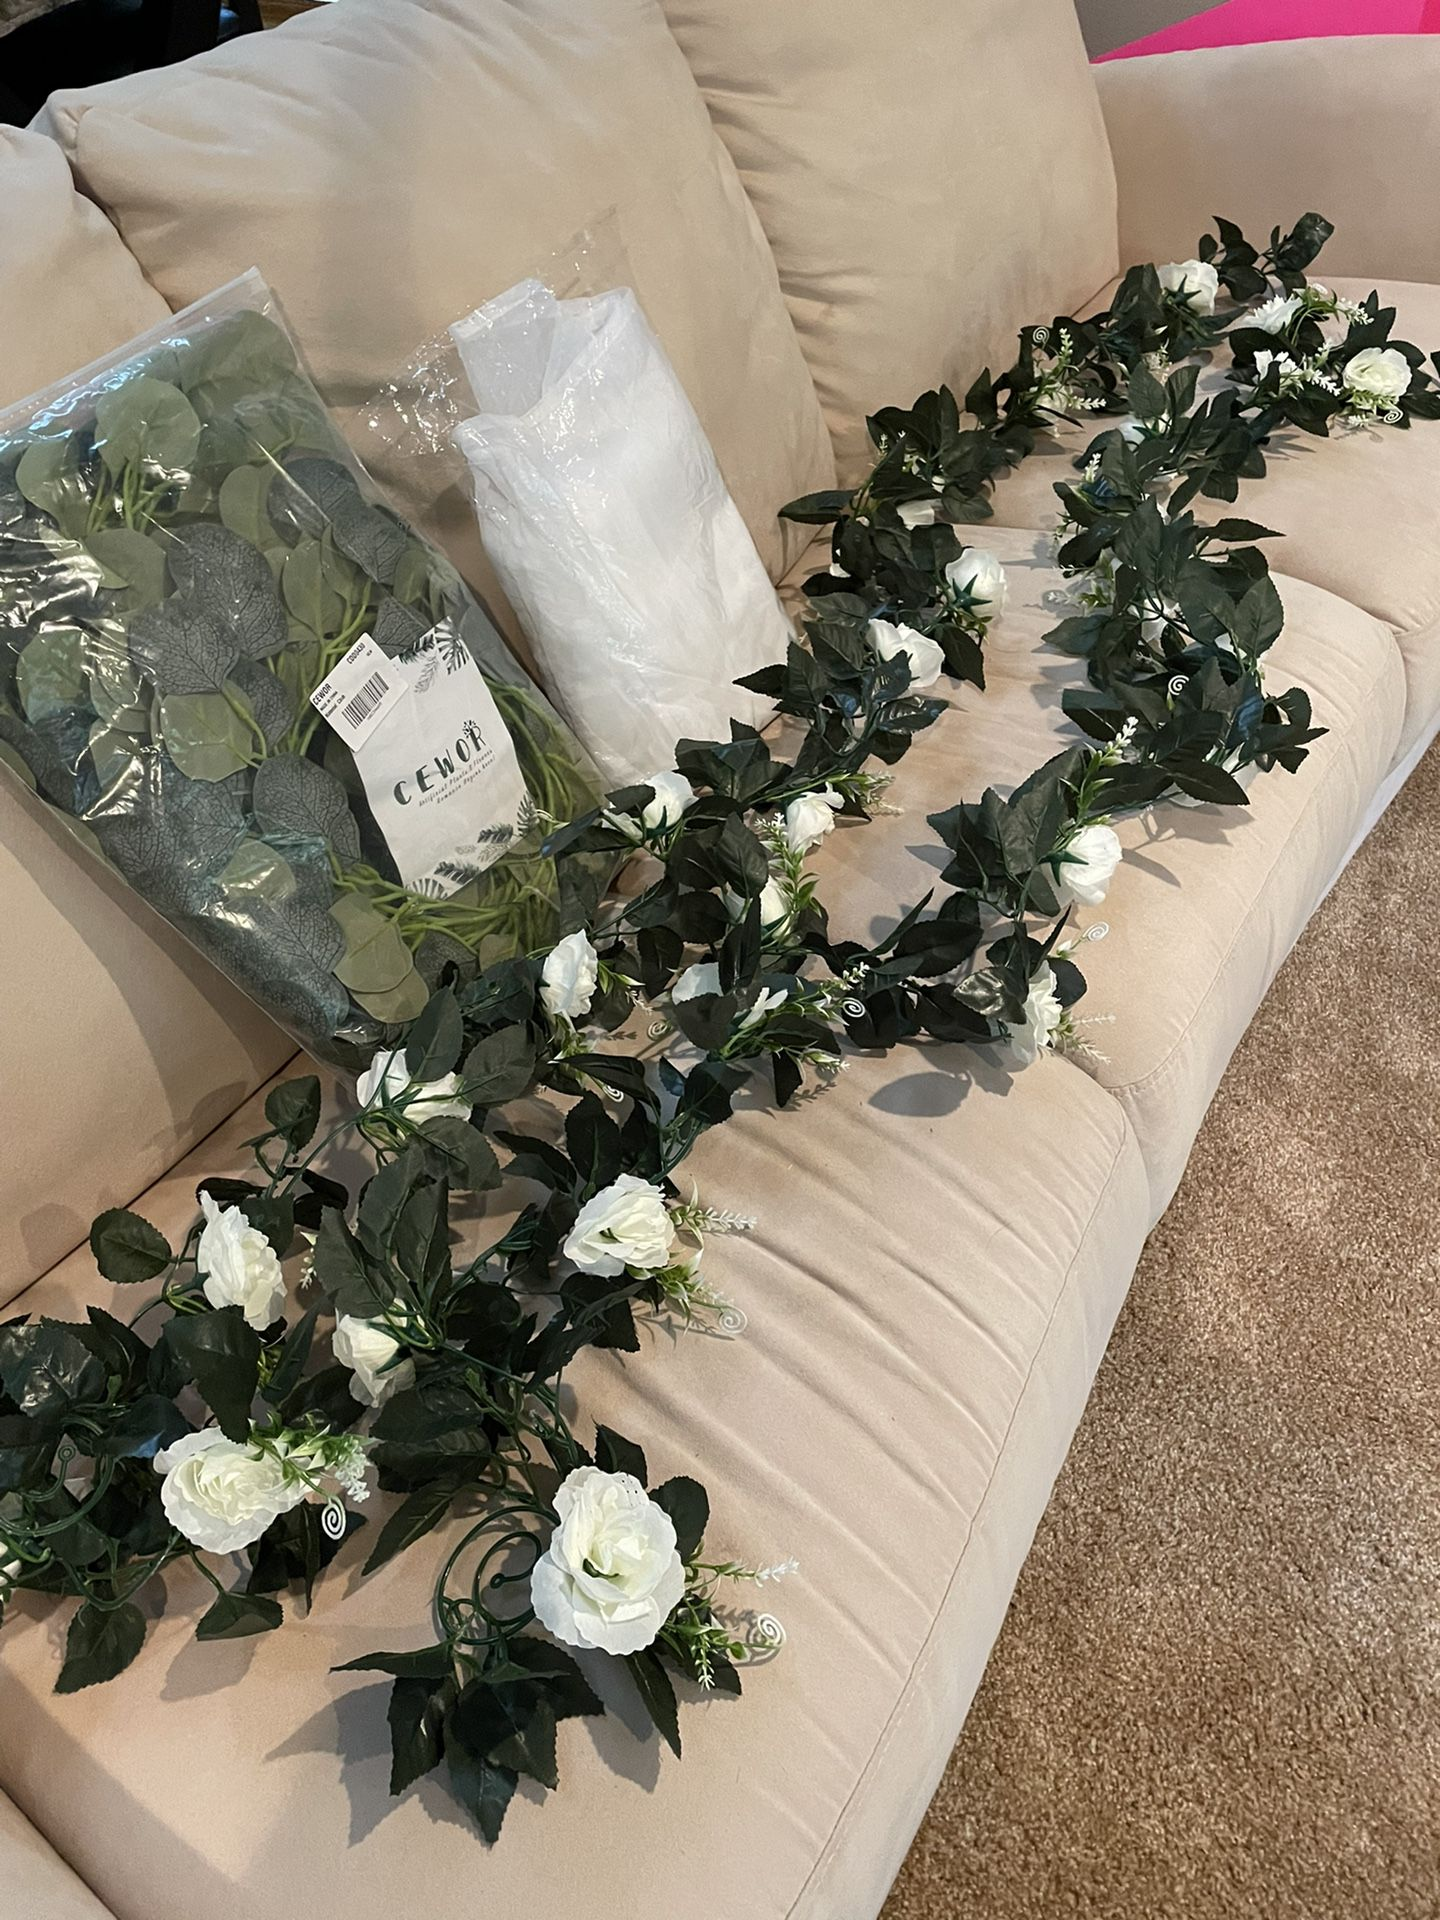 Pending Pick Up //Decorations For Wedding, Baby Shower, Birthday Or Whatever You Want